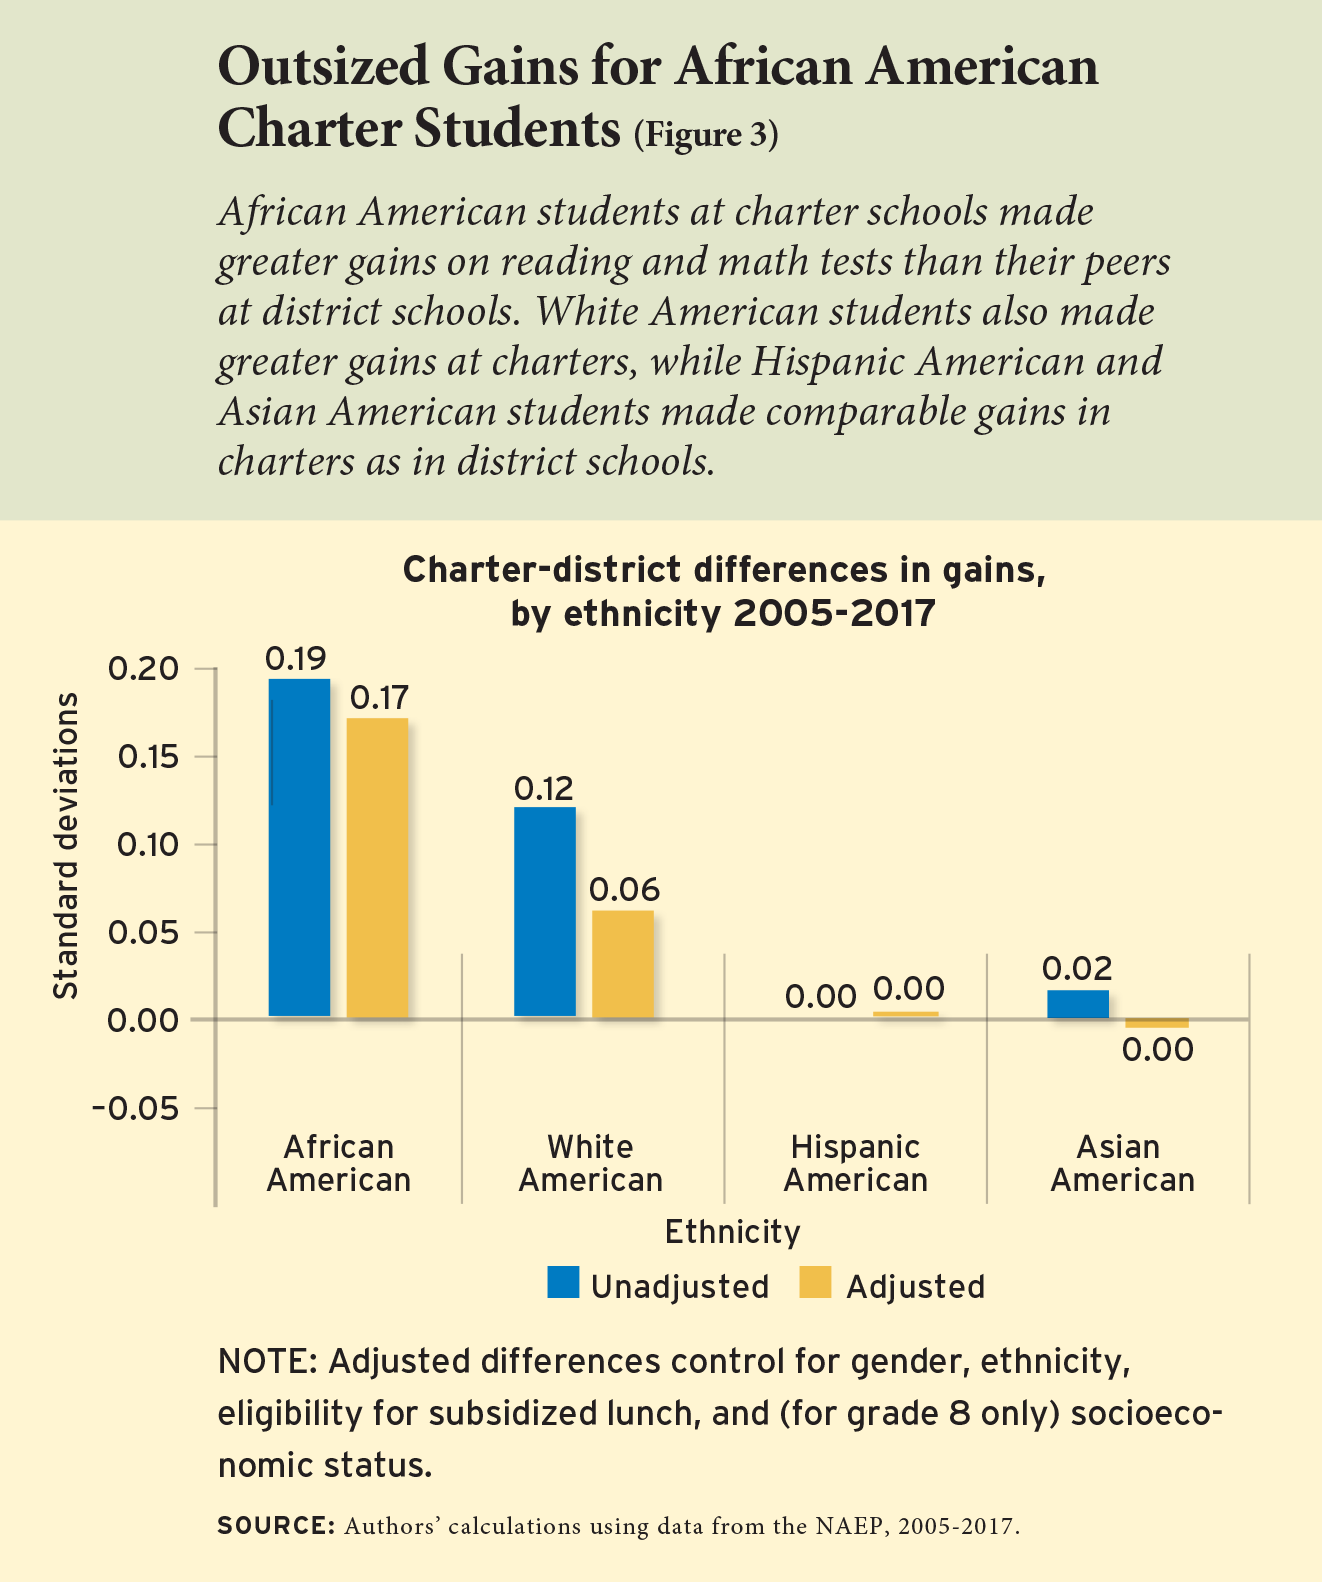 Figure 3 - Outsized Gains for African American Charter Students